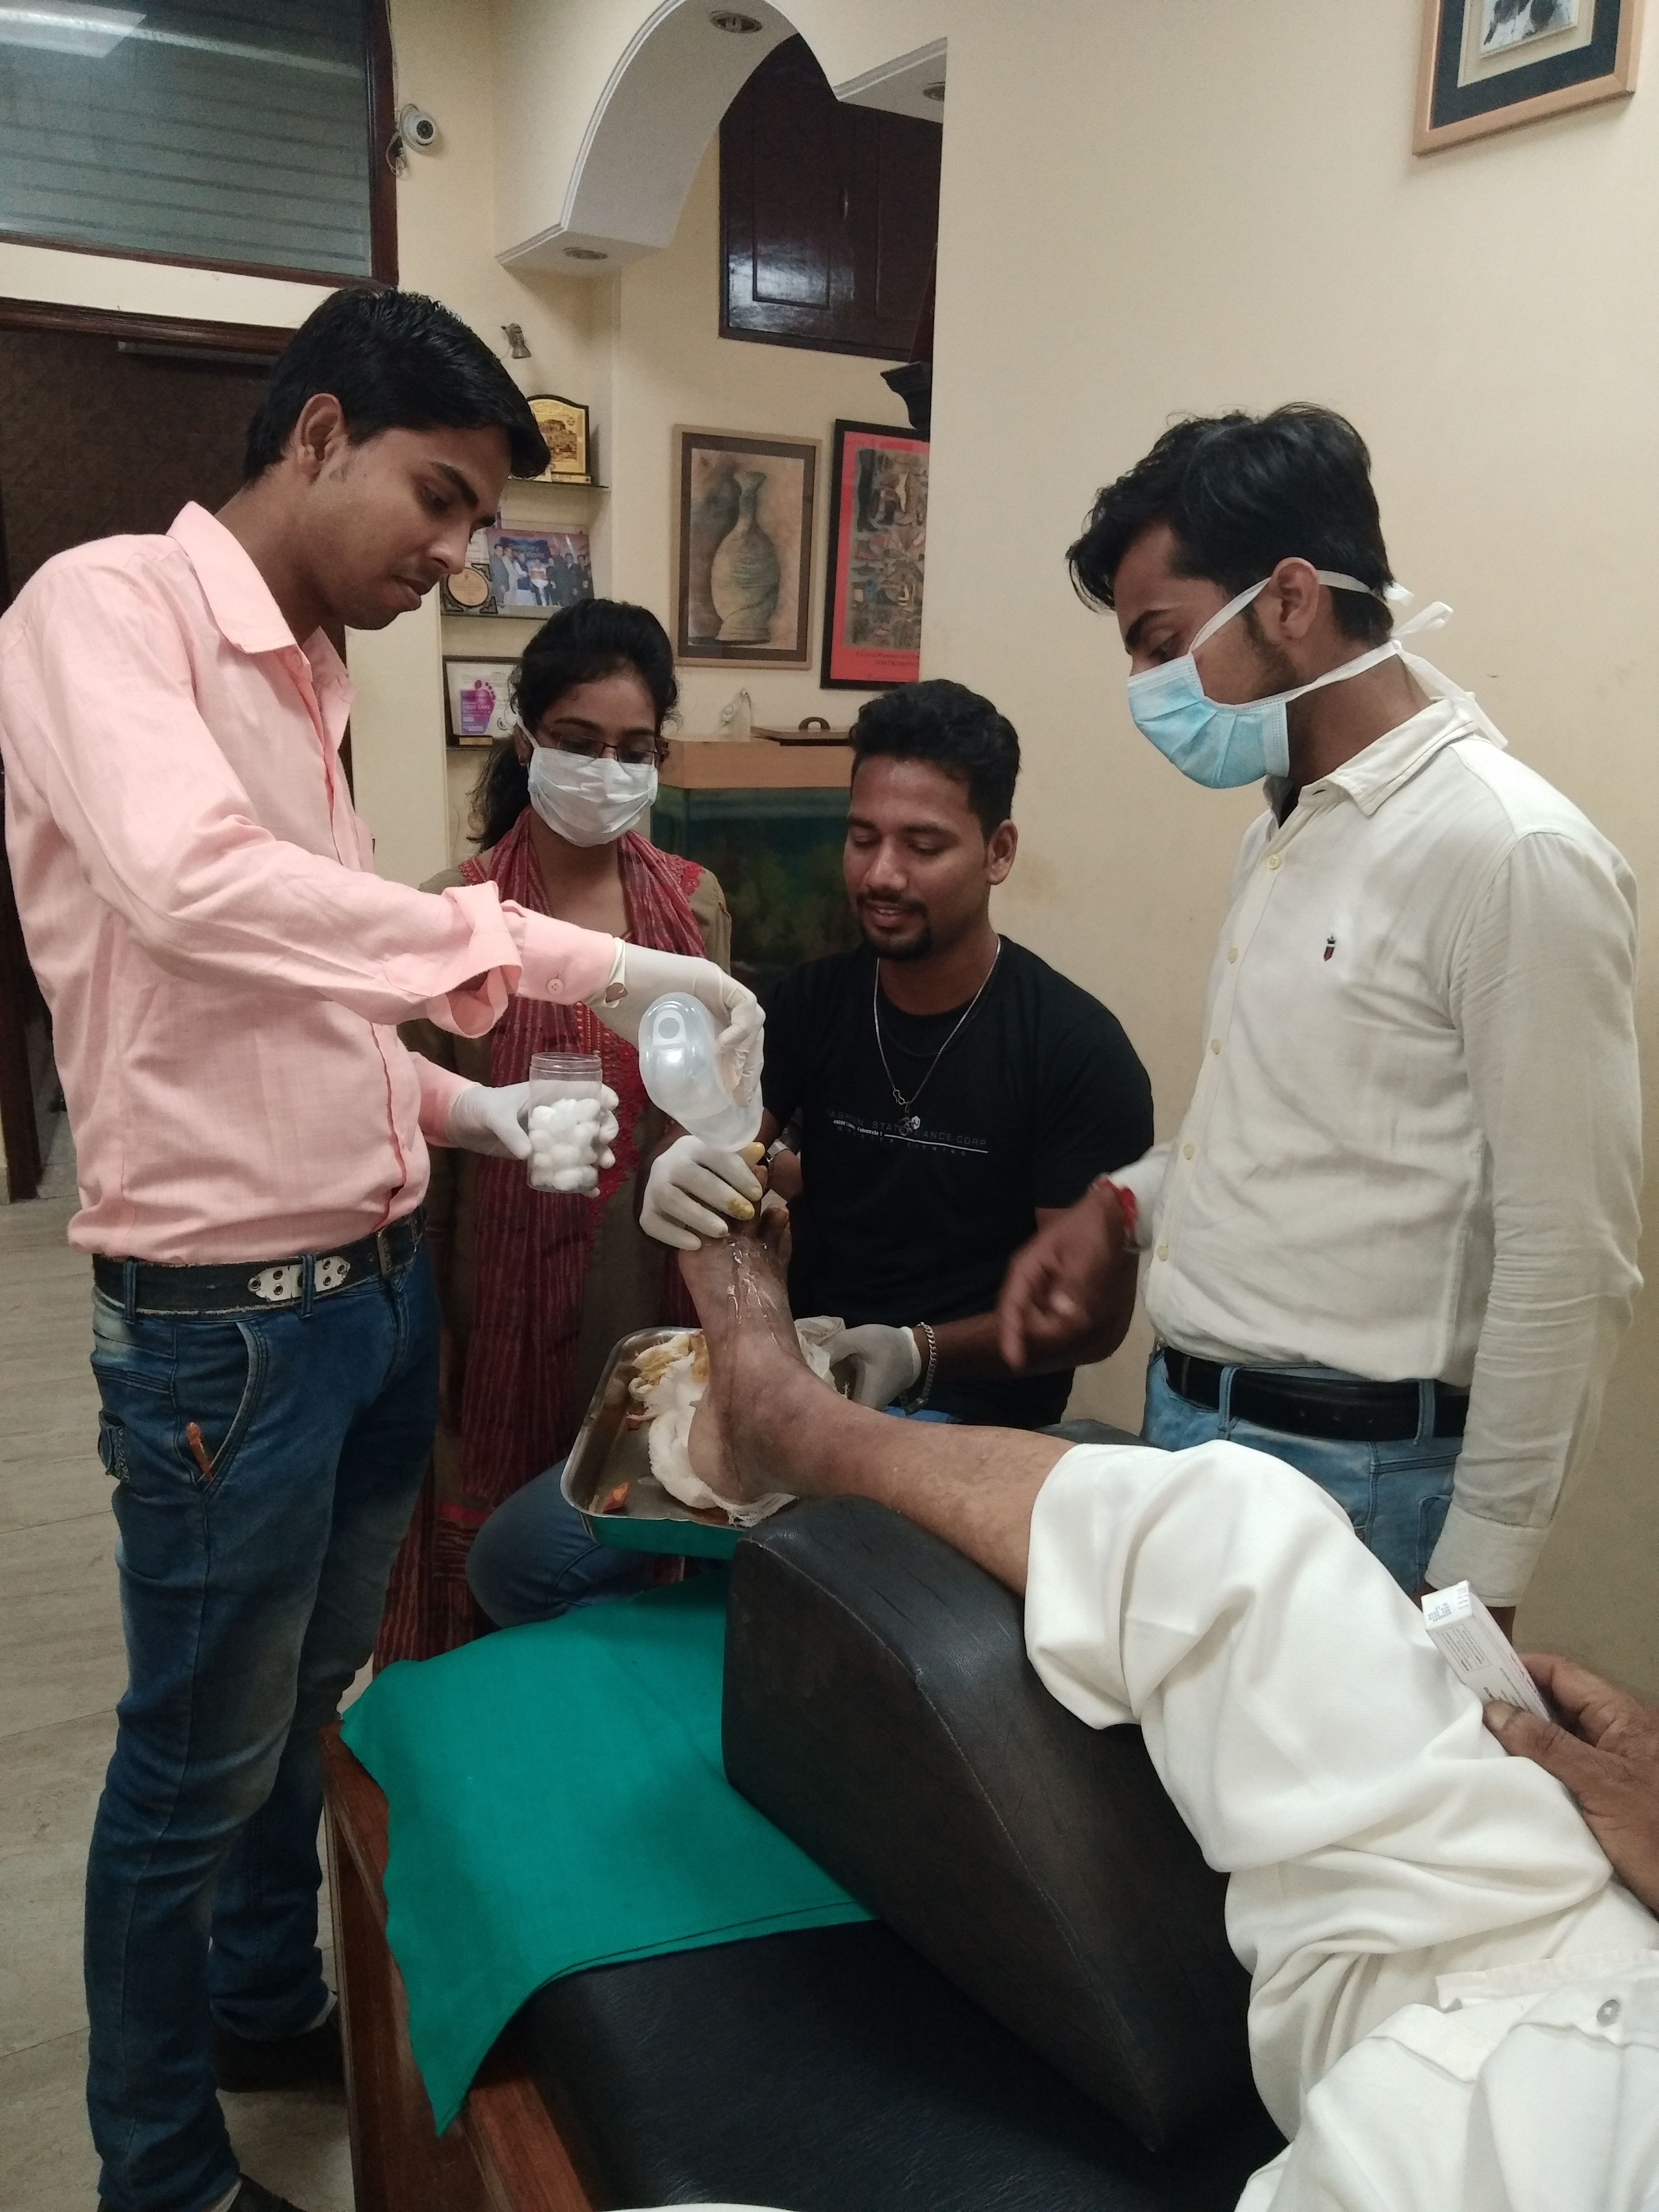 Diabetes Educators Training in Podiatry at Diabetic Foot Care Center  New Delhi  India 26th Sept to 3rd Oct 2018